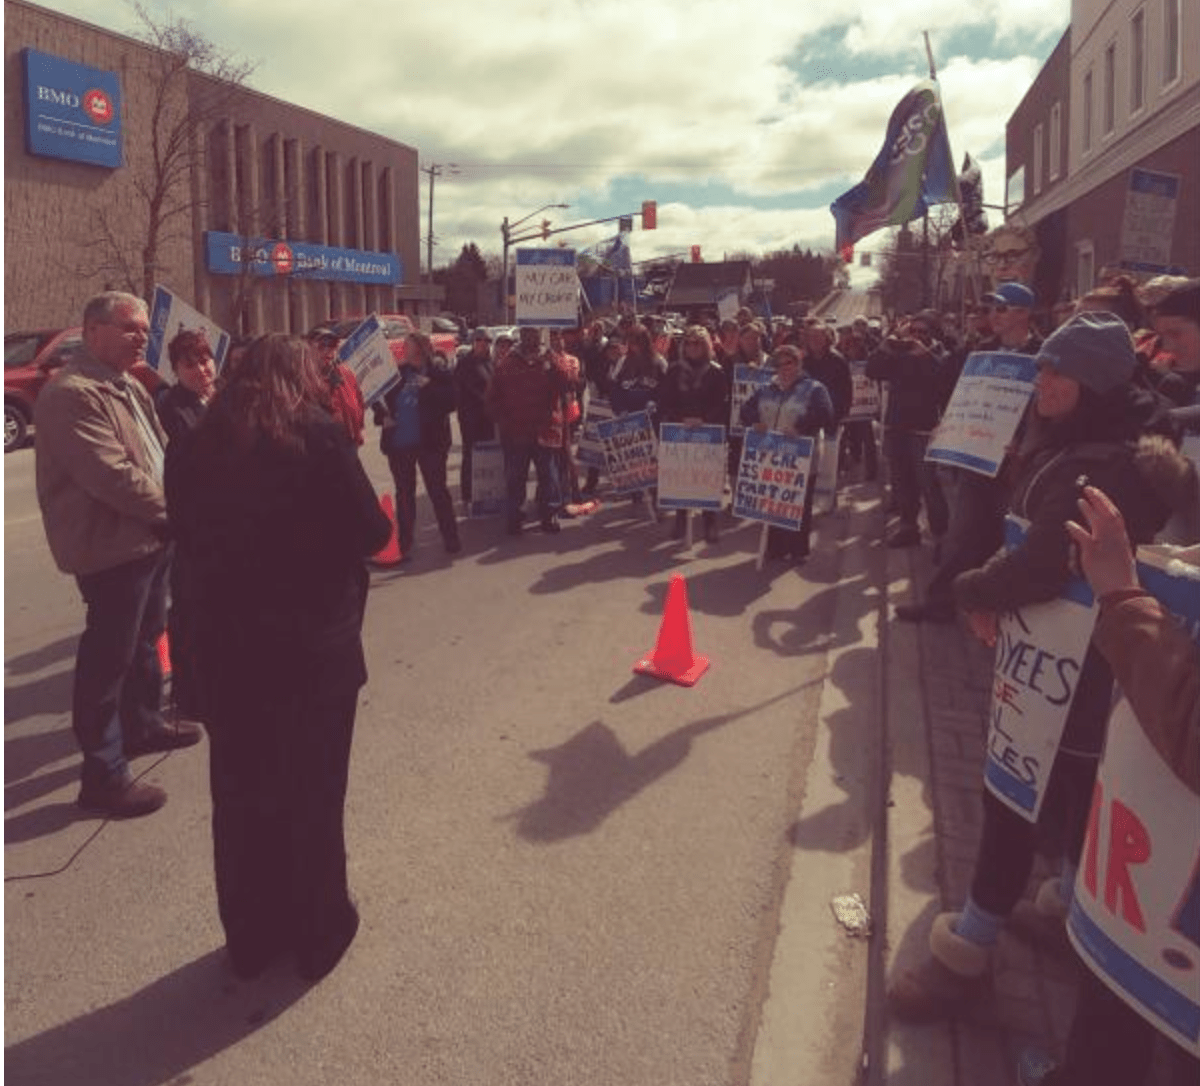 OPSEU President Warren (Smokey) Thomas speaks to a large crowd of OPSEU members, many of them holding picket signs, during a rally at Community Living Campbellford/Brighton.